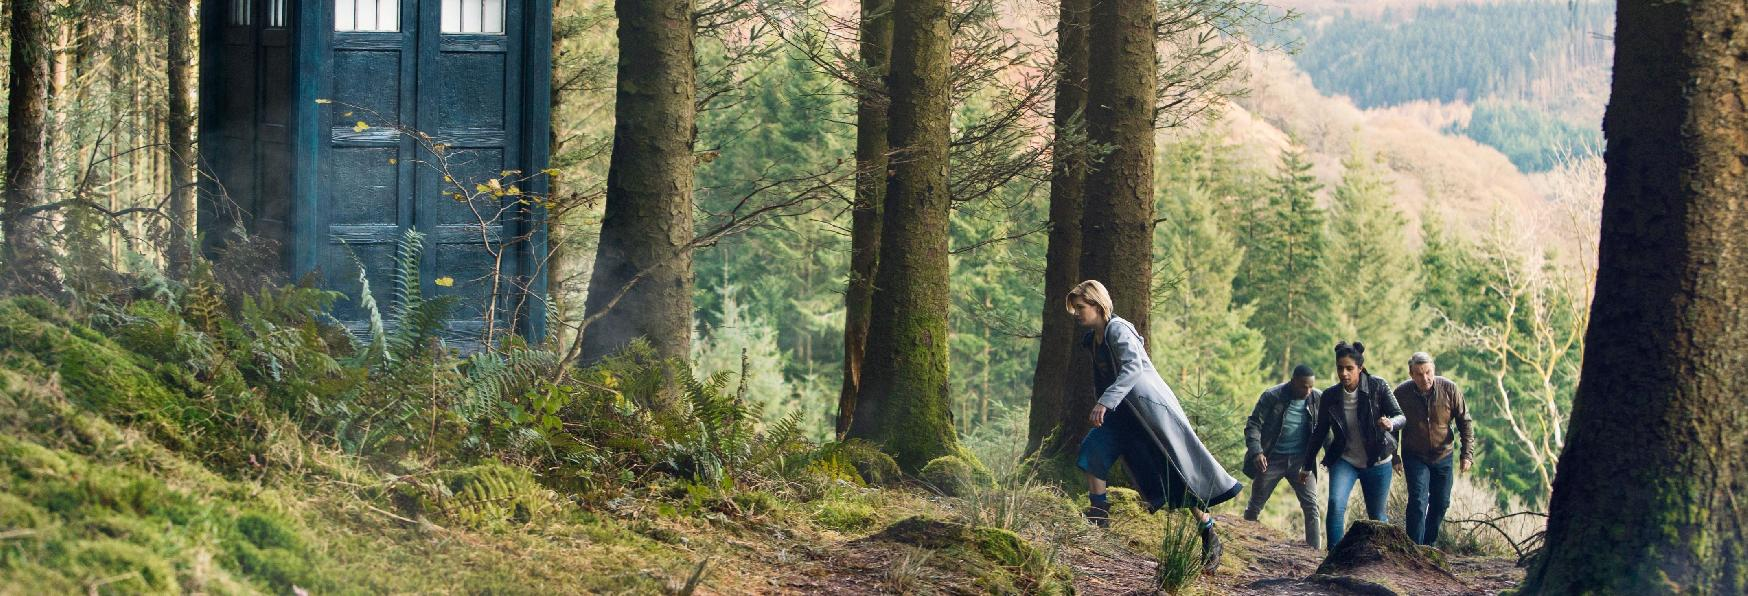 Recensione di Doctor Who 11x09: It Takes You Away